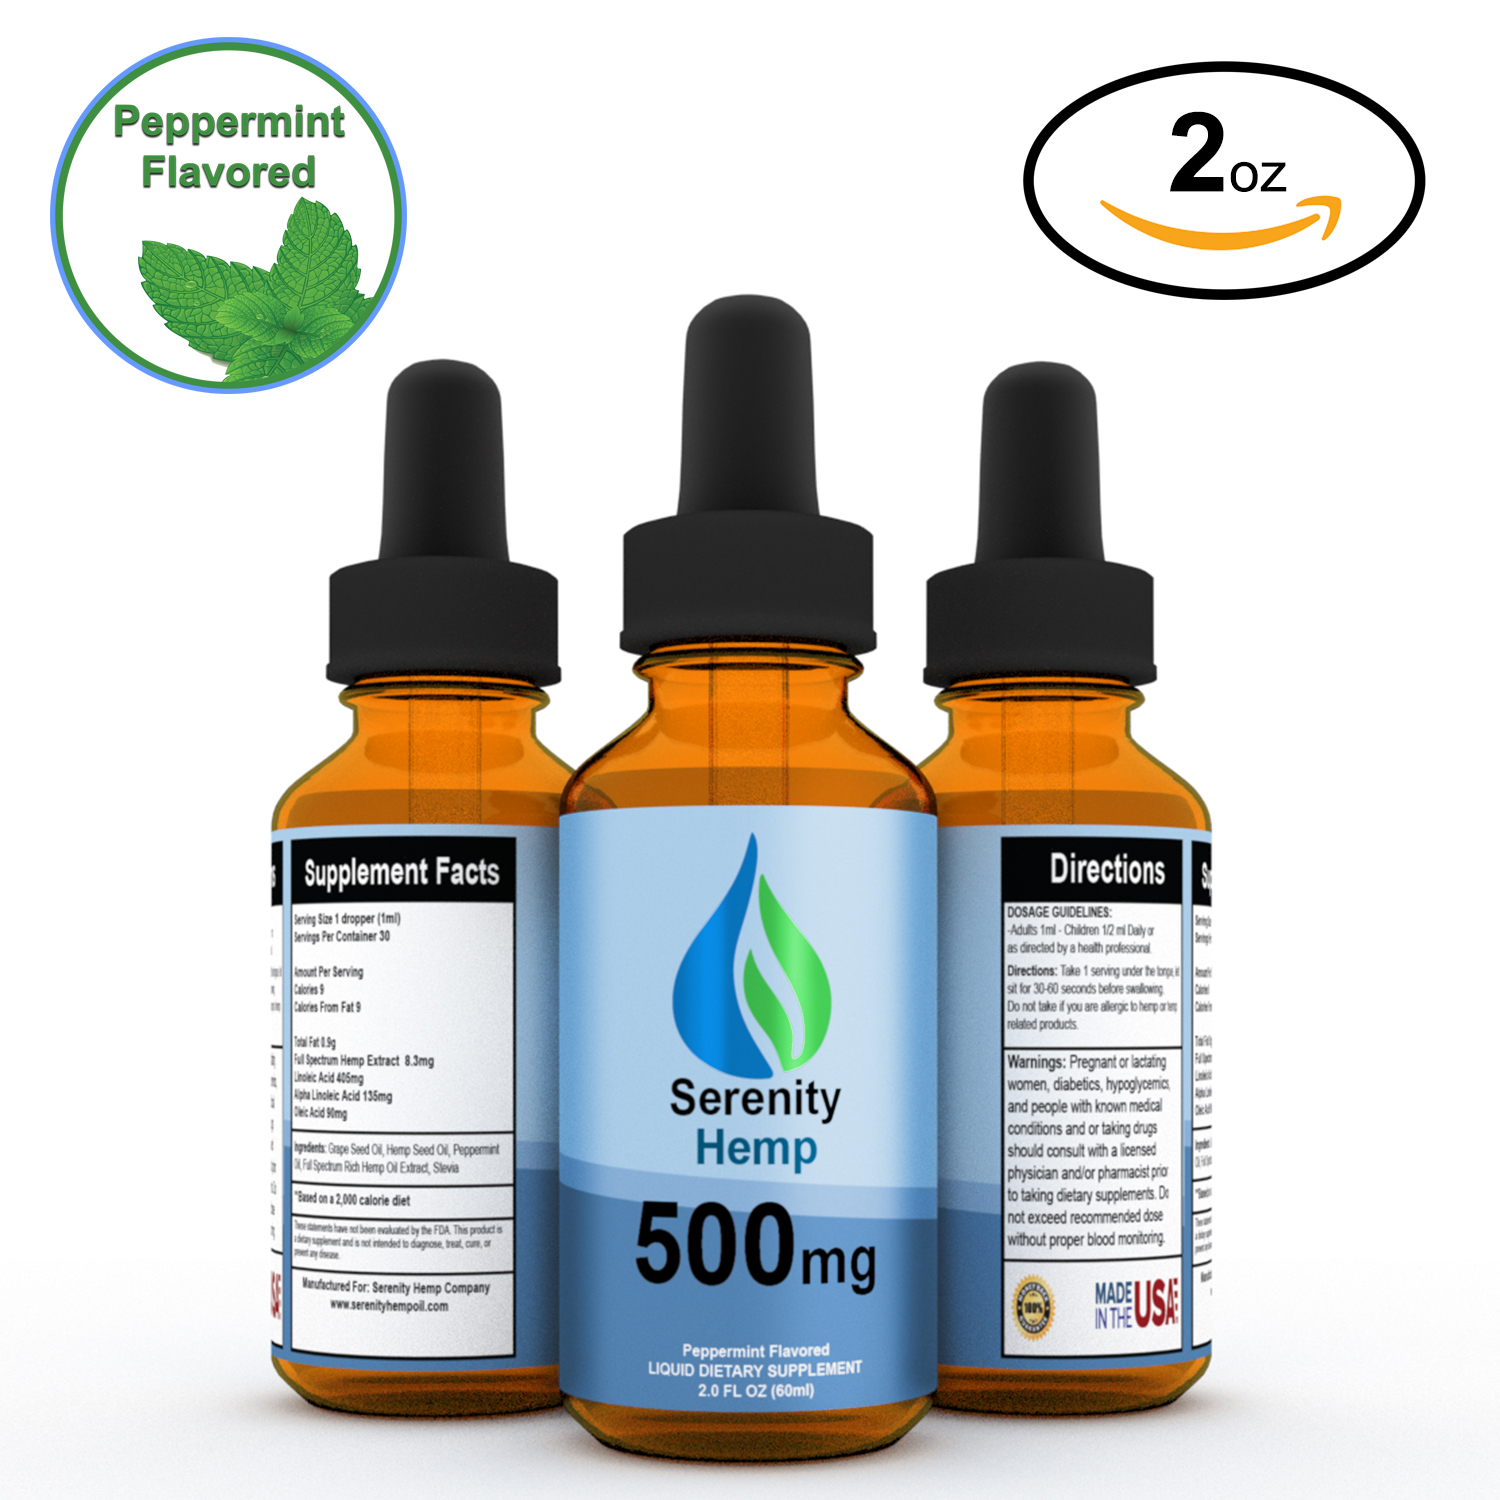 500 mg Peppermint Serenity Hemp Oil - 2 fl oz - 99% Pure Hemp Oil Extract - Ease Pain, Anxiety, Stress, Sleep Problems, Inflammation